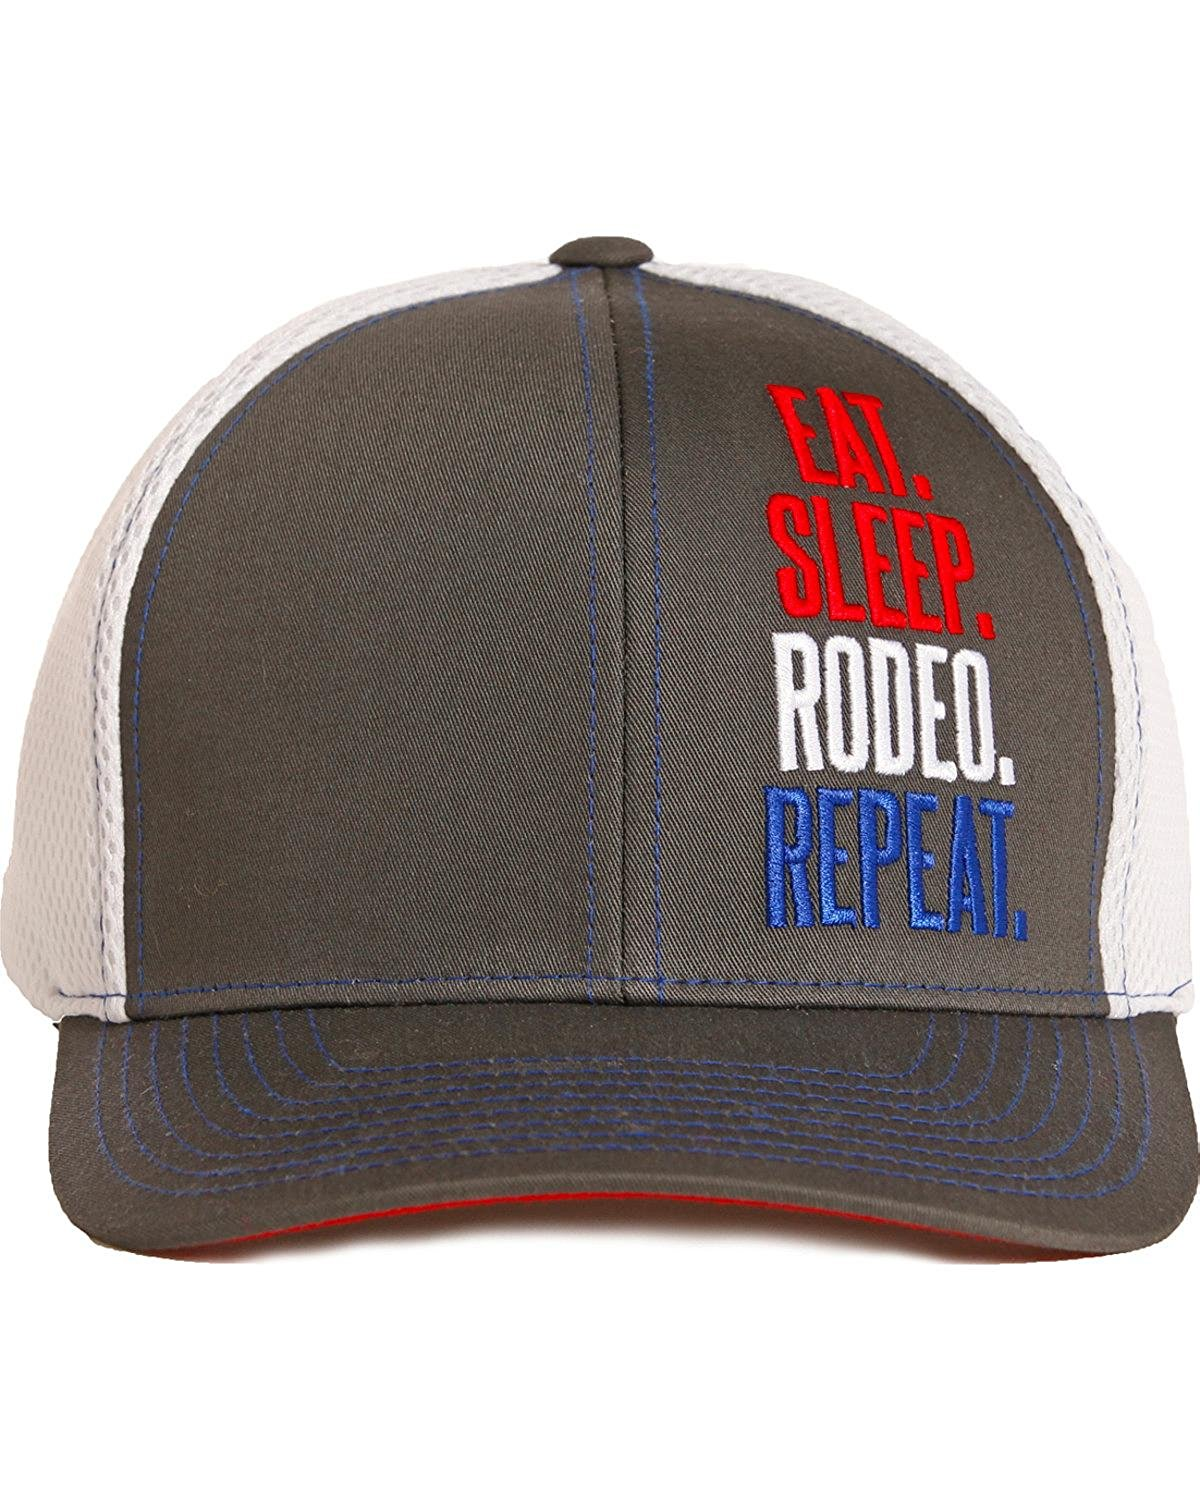 6ad61c0ecbb Get Quotations · Dale Brisby Men s Eat Sleep Rodeo Repeat Cap - Cbc3719